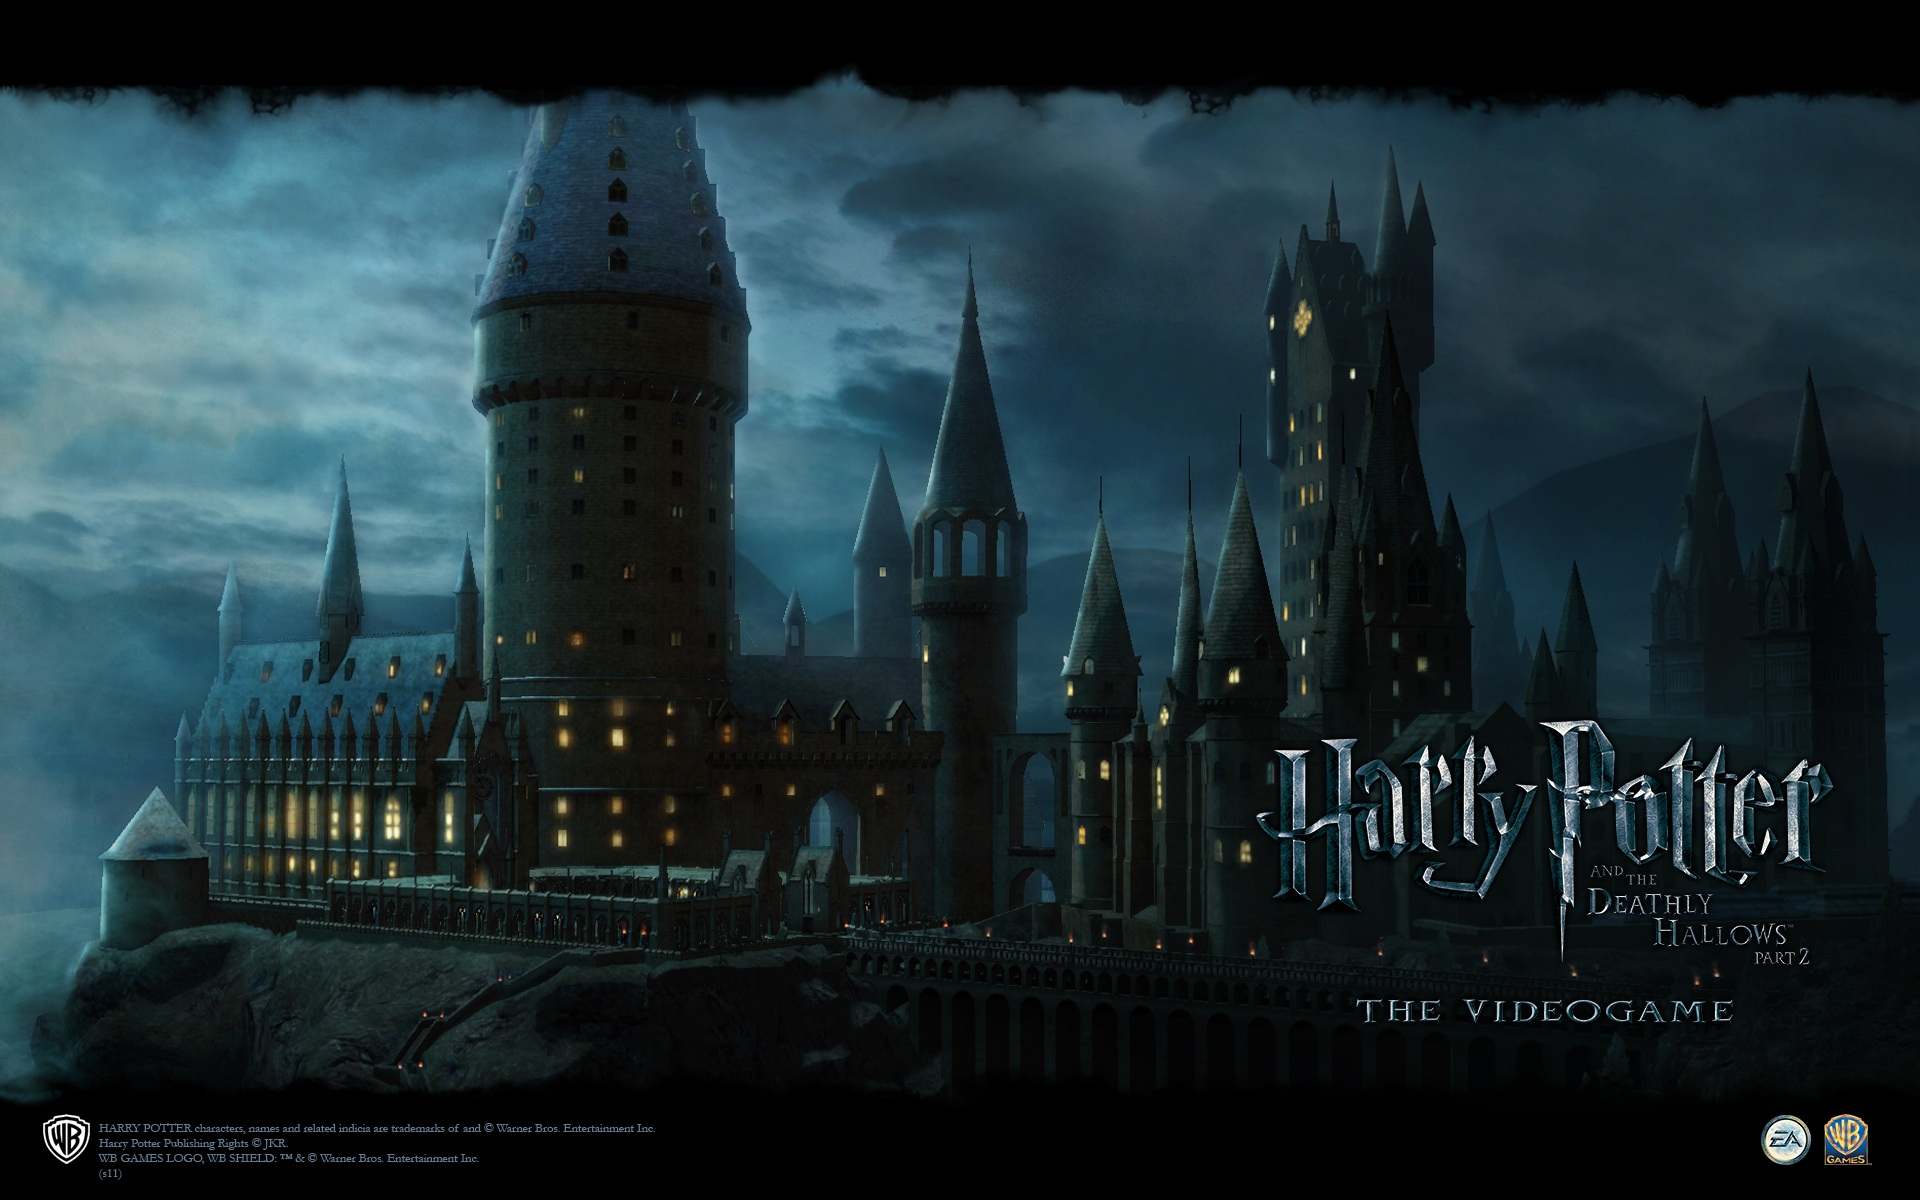 harry-potter-desktop-backgrounds-of-video-game | wallpaper.wiki